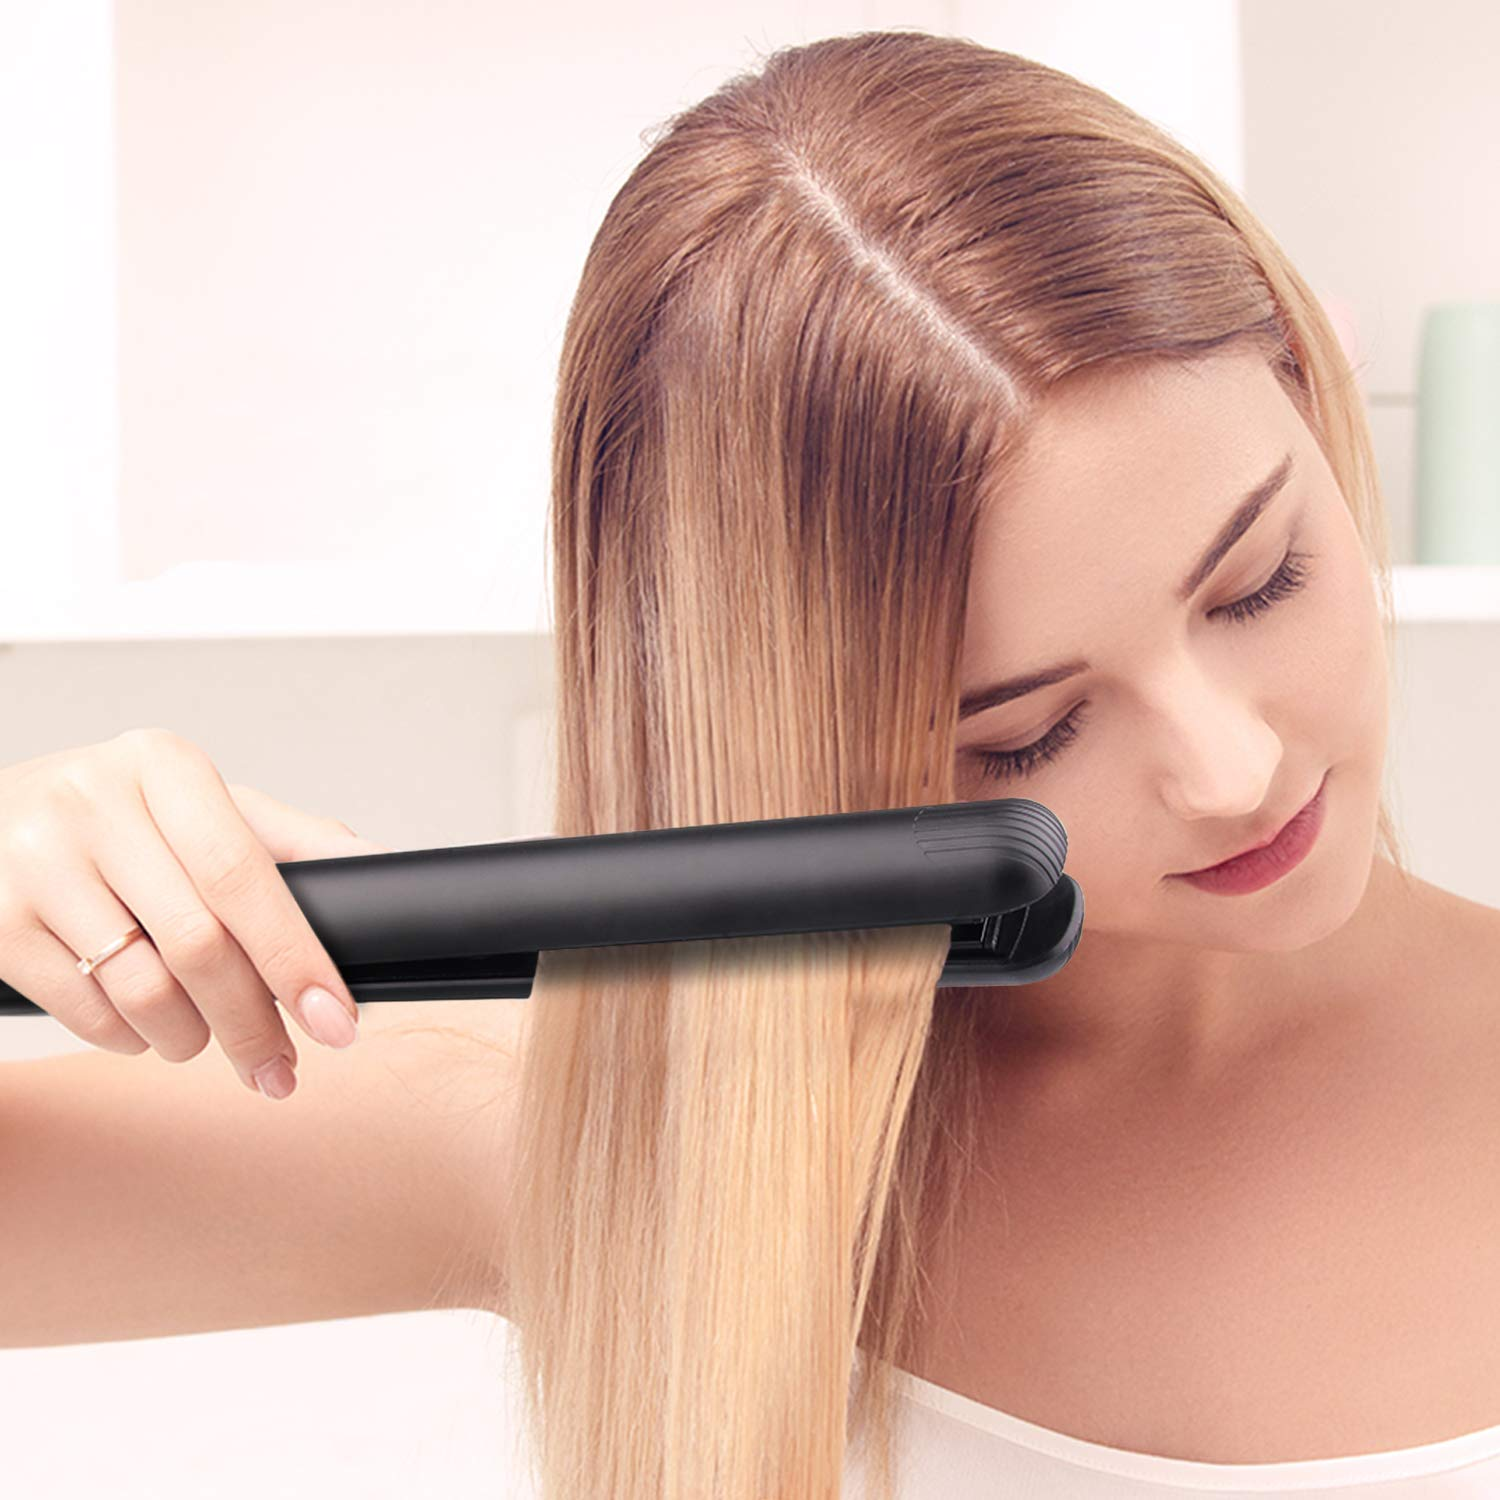 Hair Straightener and Curler Flat Iron for Ceramic Hair Straightening Iron Wide Plate 360 Swivel Cord, Heat up Fast Hair Iron with Rotating Adjustable Temperature and Salon High Heat 255 F-450 F